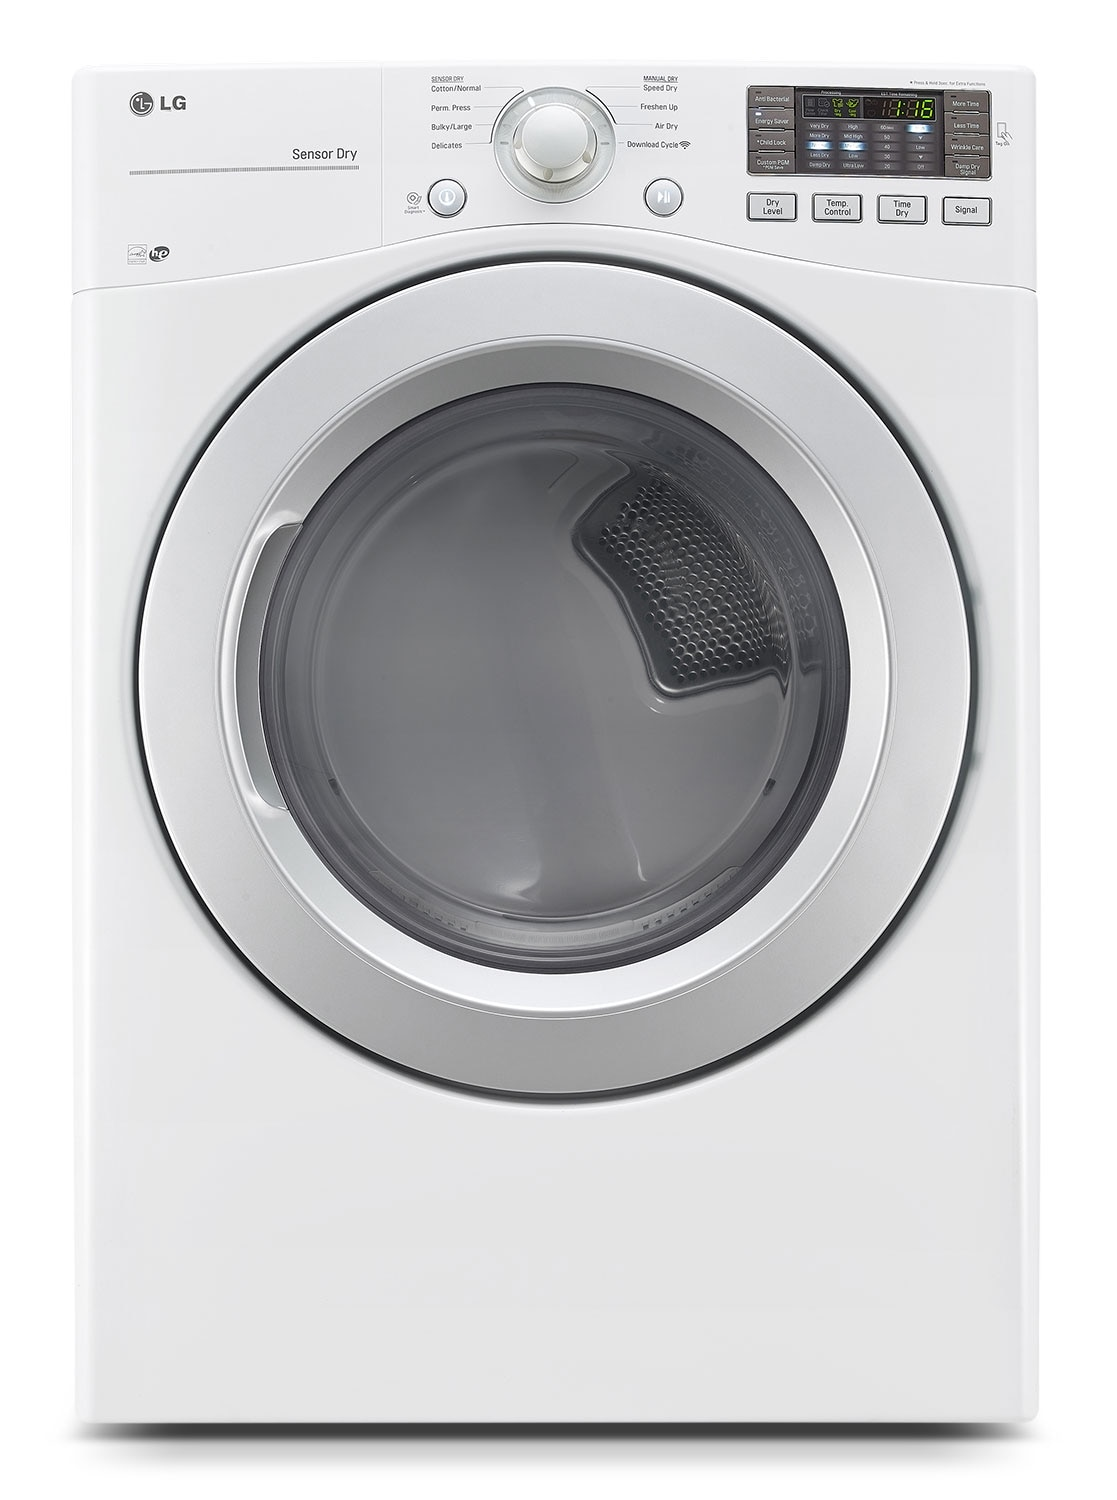 LG Appliances White Electric Dryer (7.4 Cu. Ft.) - DLE3170W